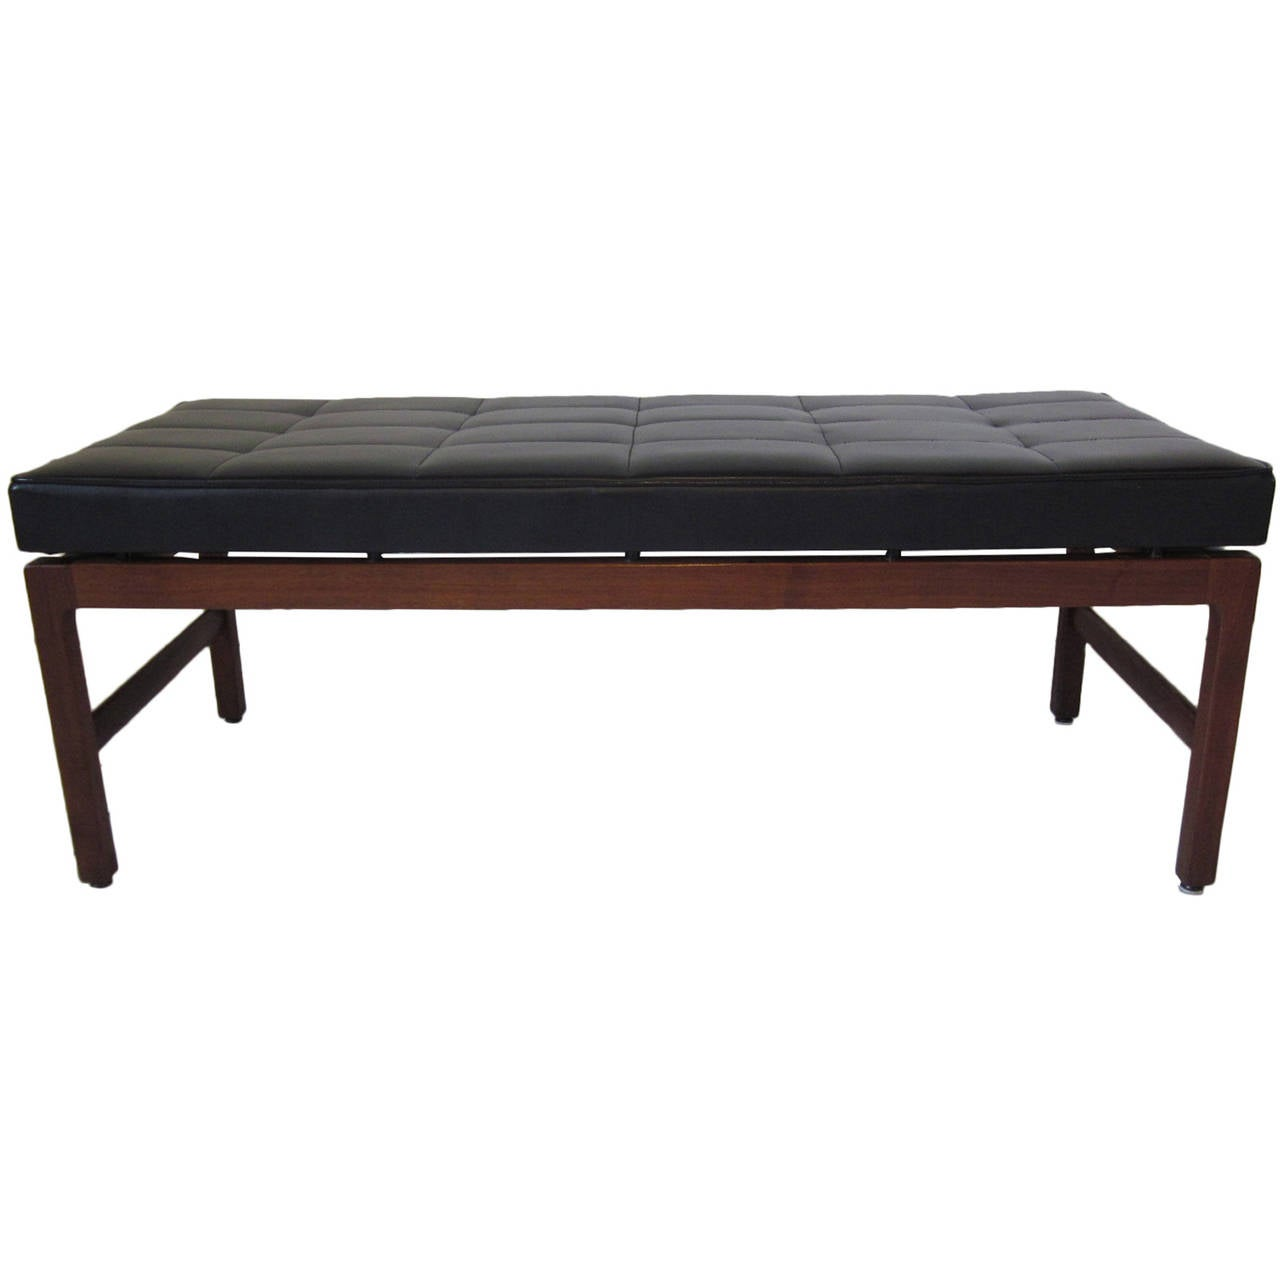 Walnut Knoll Styled Bench At 1stdibs